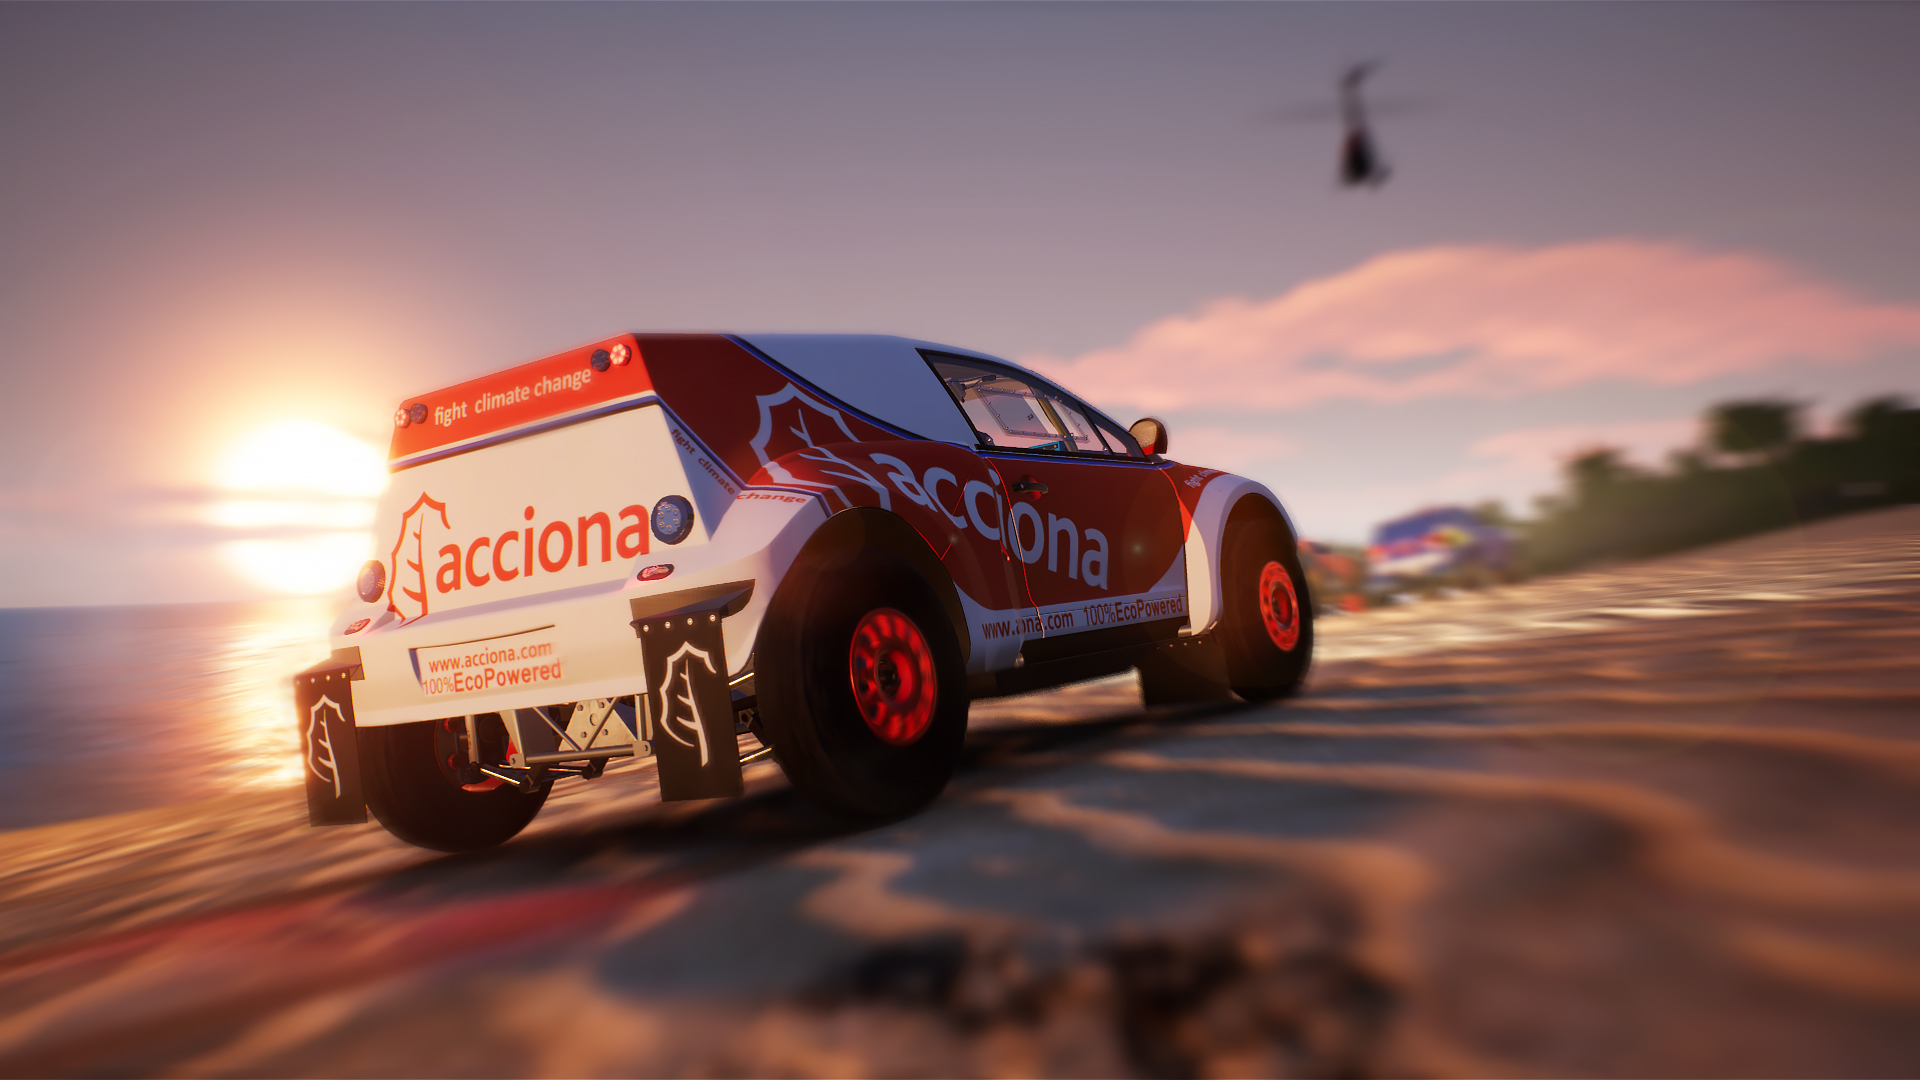 Build your Gravel energy with the free Acciona DLC